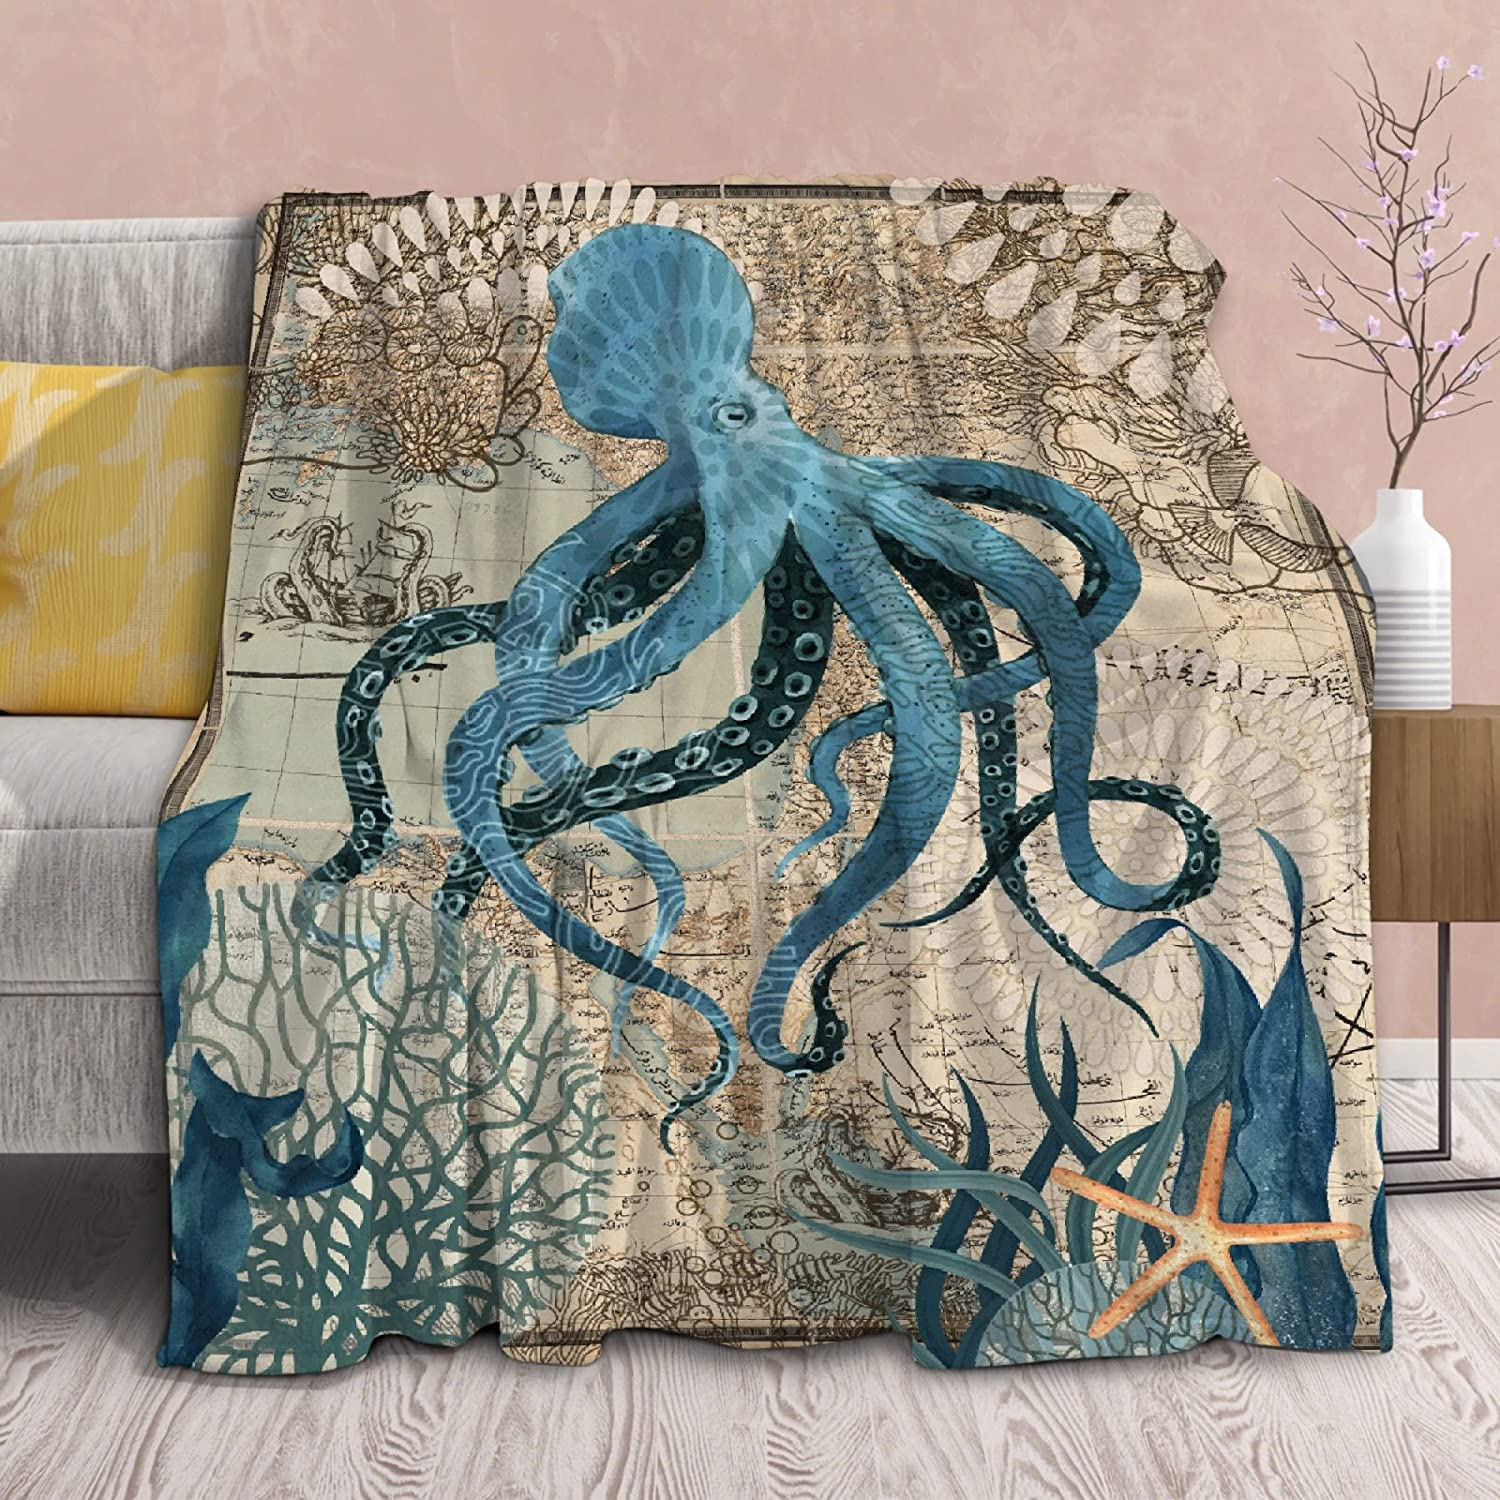 Blanket Octopus OFFicial site Retro Fish Lightweight Air 100% quality warranty Throws Condition Soft